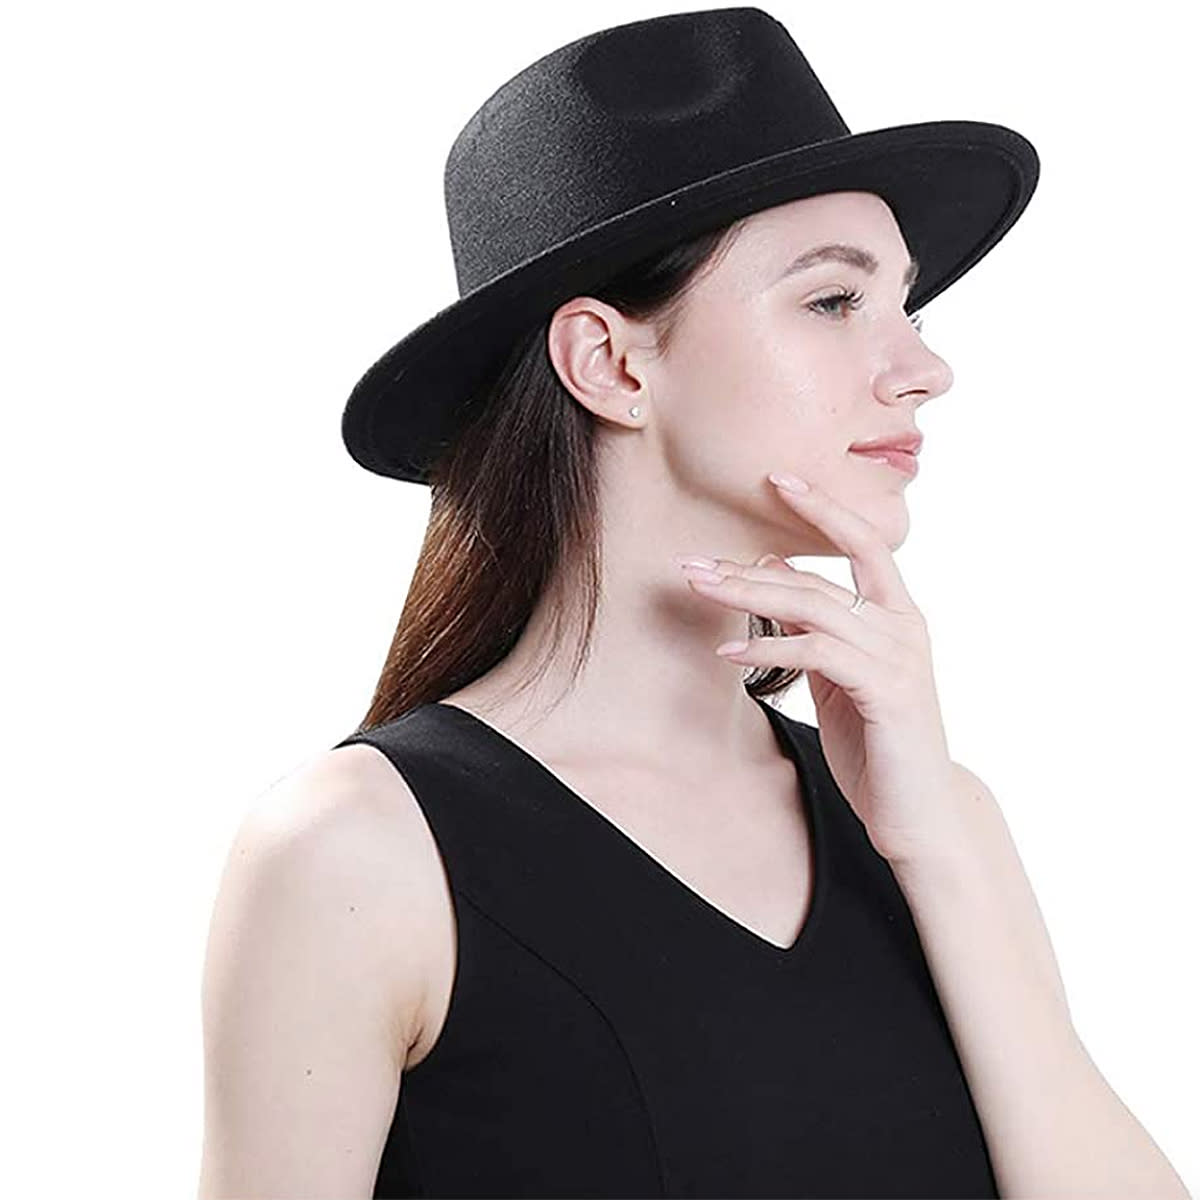 Turn Your Summer Looks Into Fall Fashion With This Classy Fedora